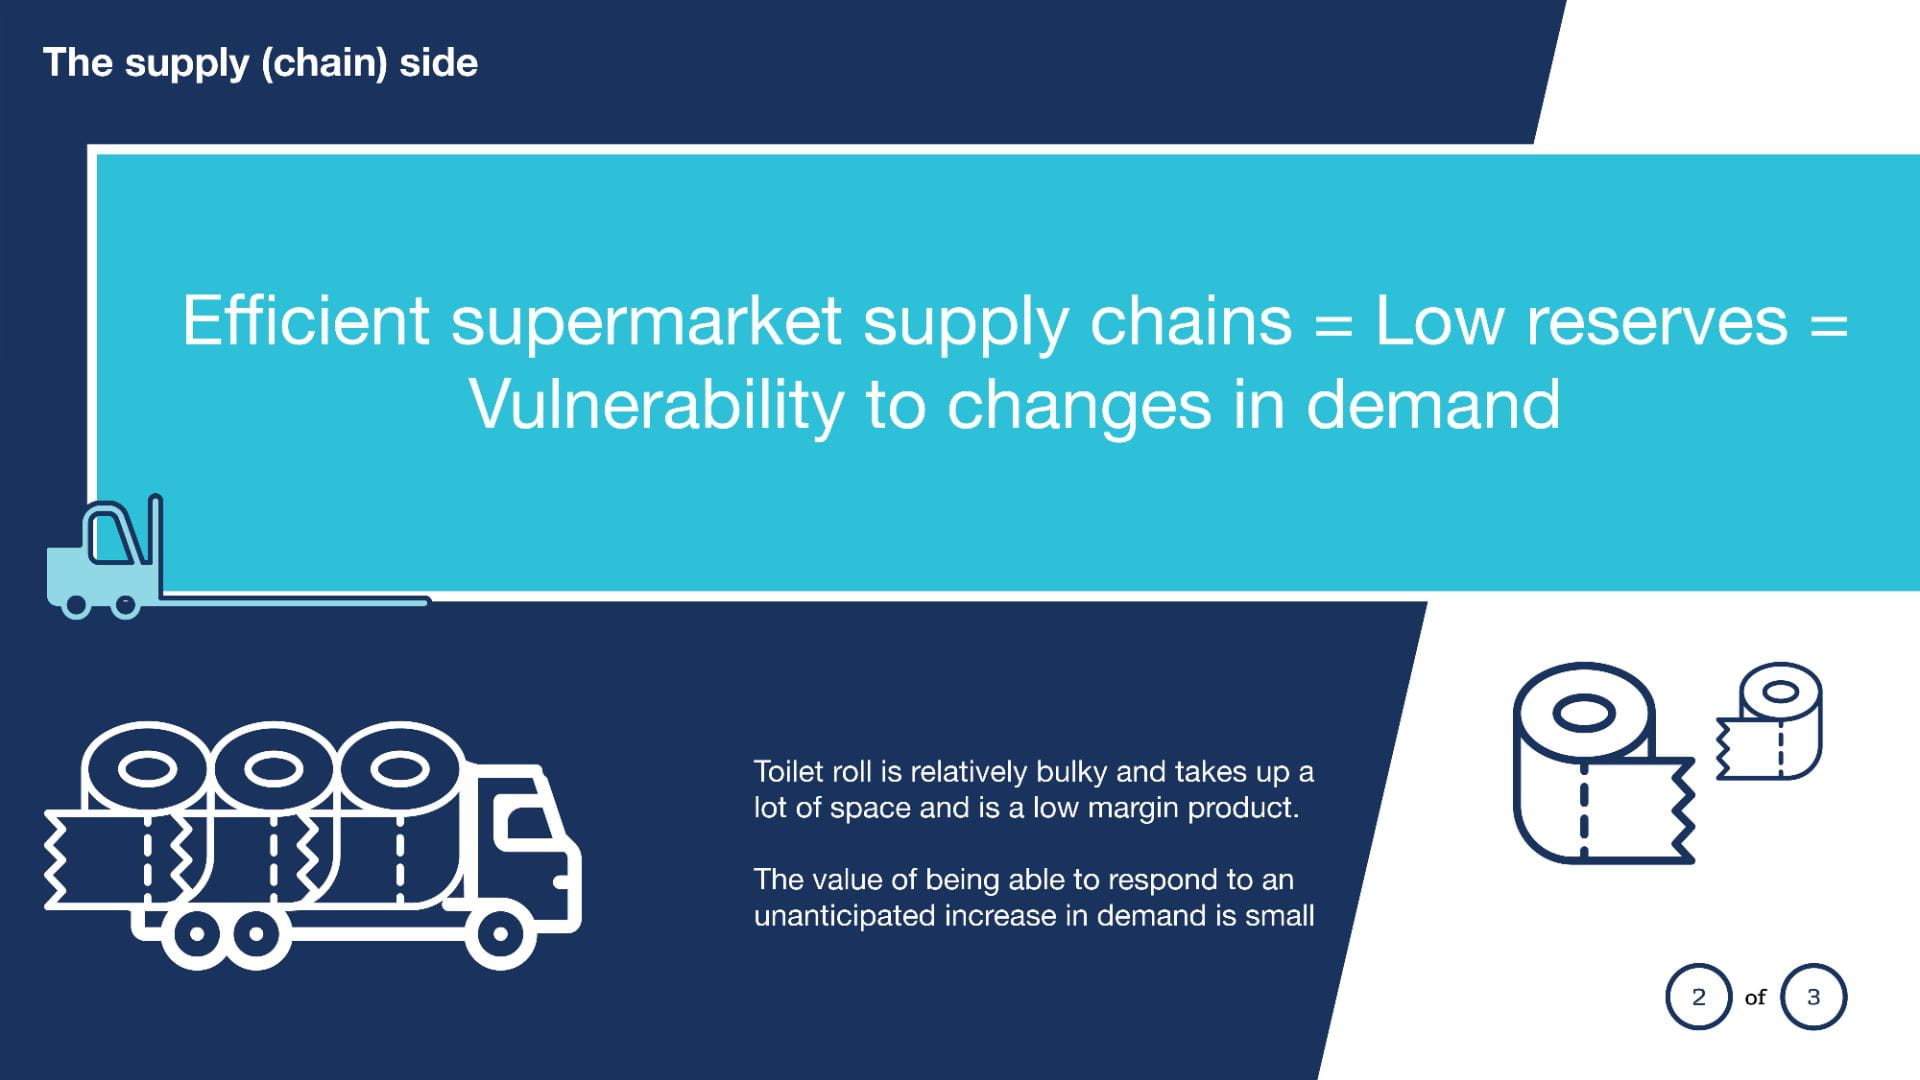 The supply (chain) side